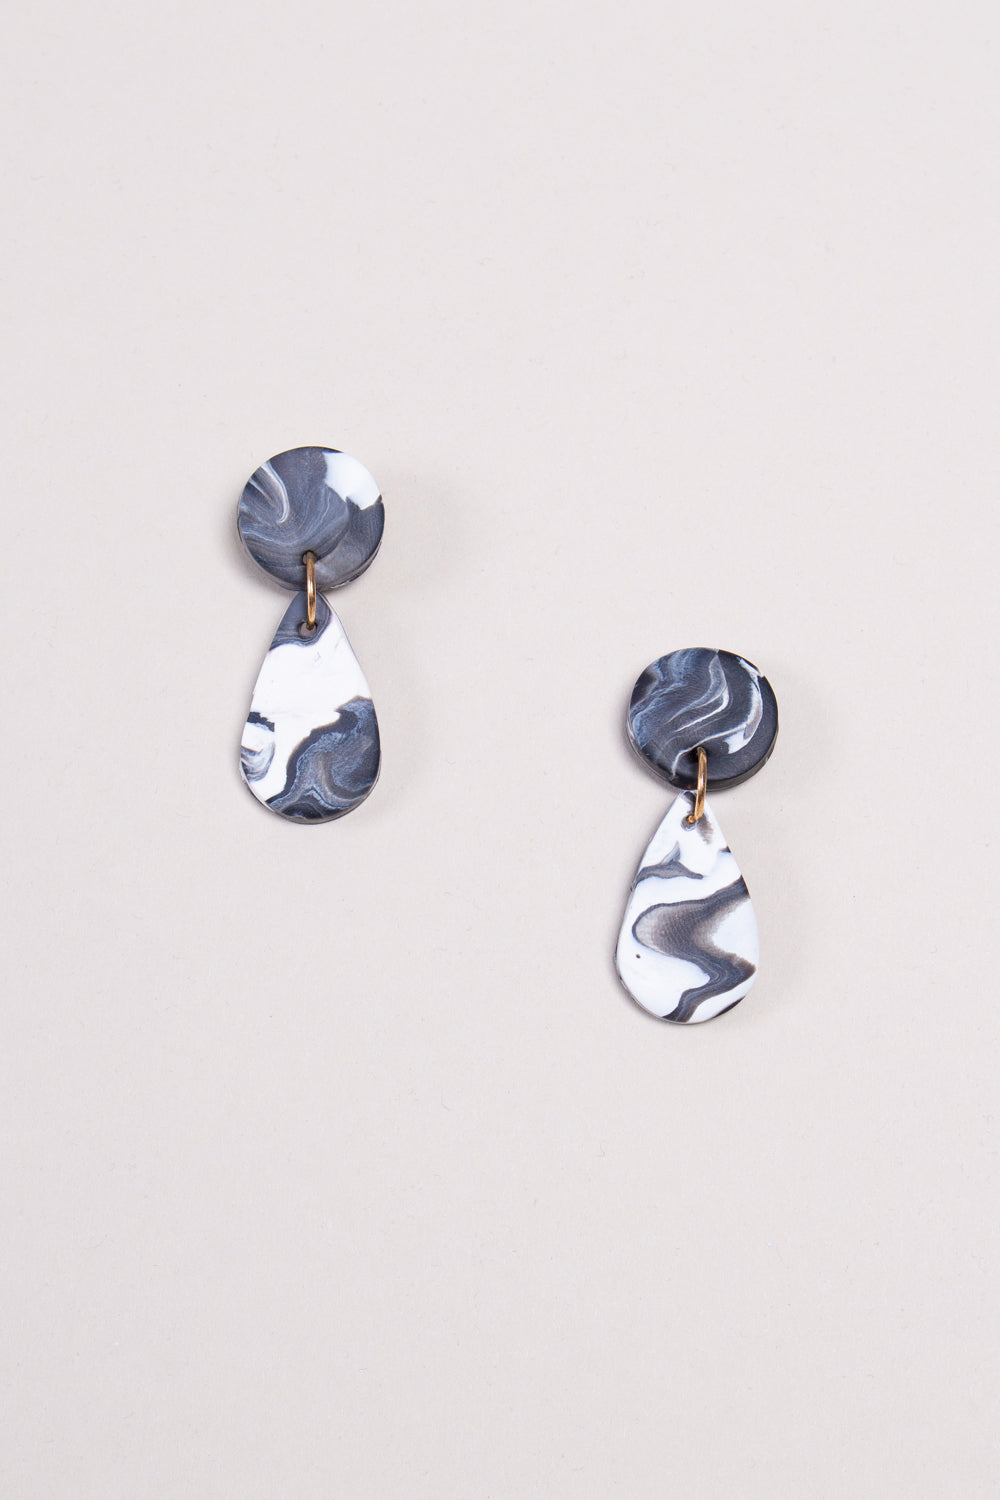 Small Liv Earrings in Black and White Swirl